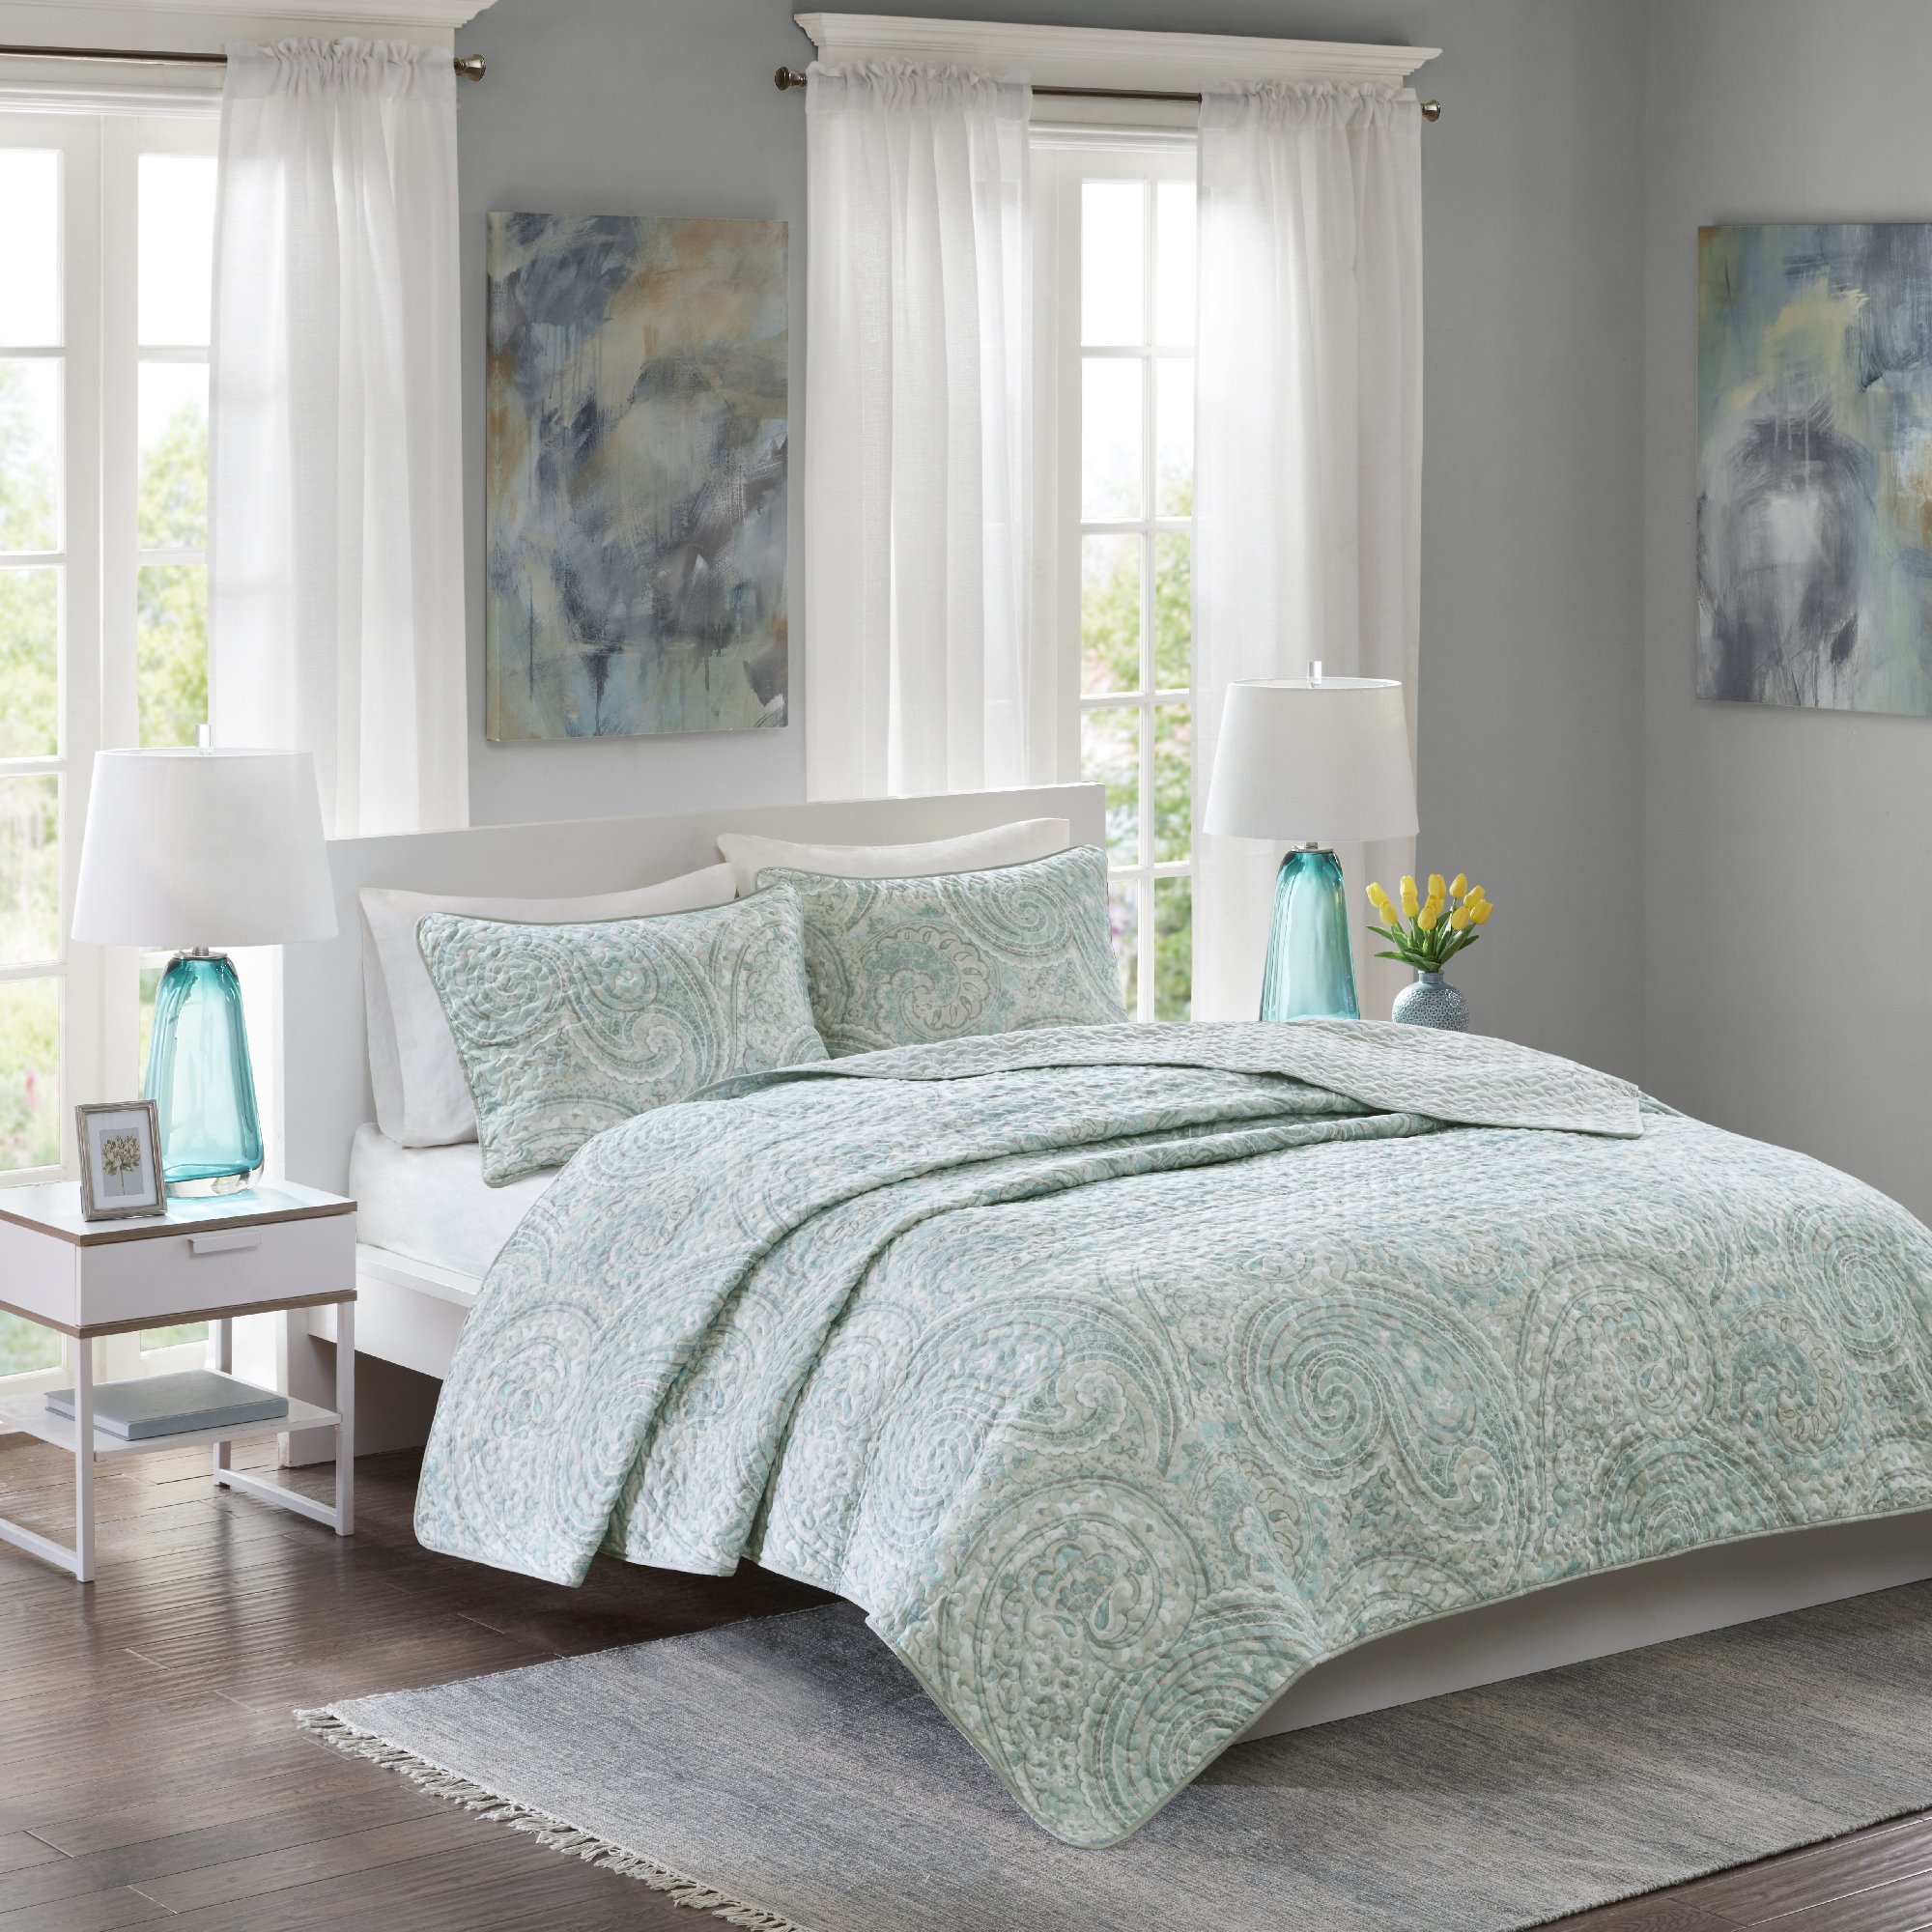 Comfort Spaces - Kashmir Mini Quilt Set - 3 Piece - Paisley Pattern - Blue, Grey, King/California King Size, includes 1 Quilt, 2 Shams